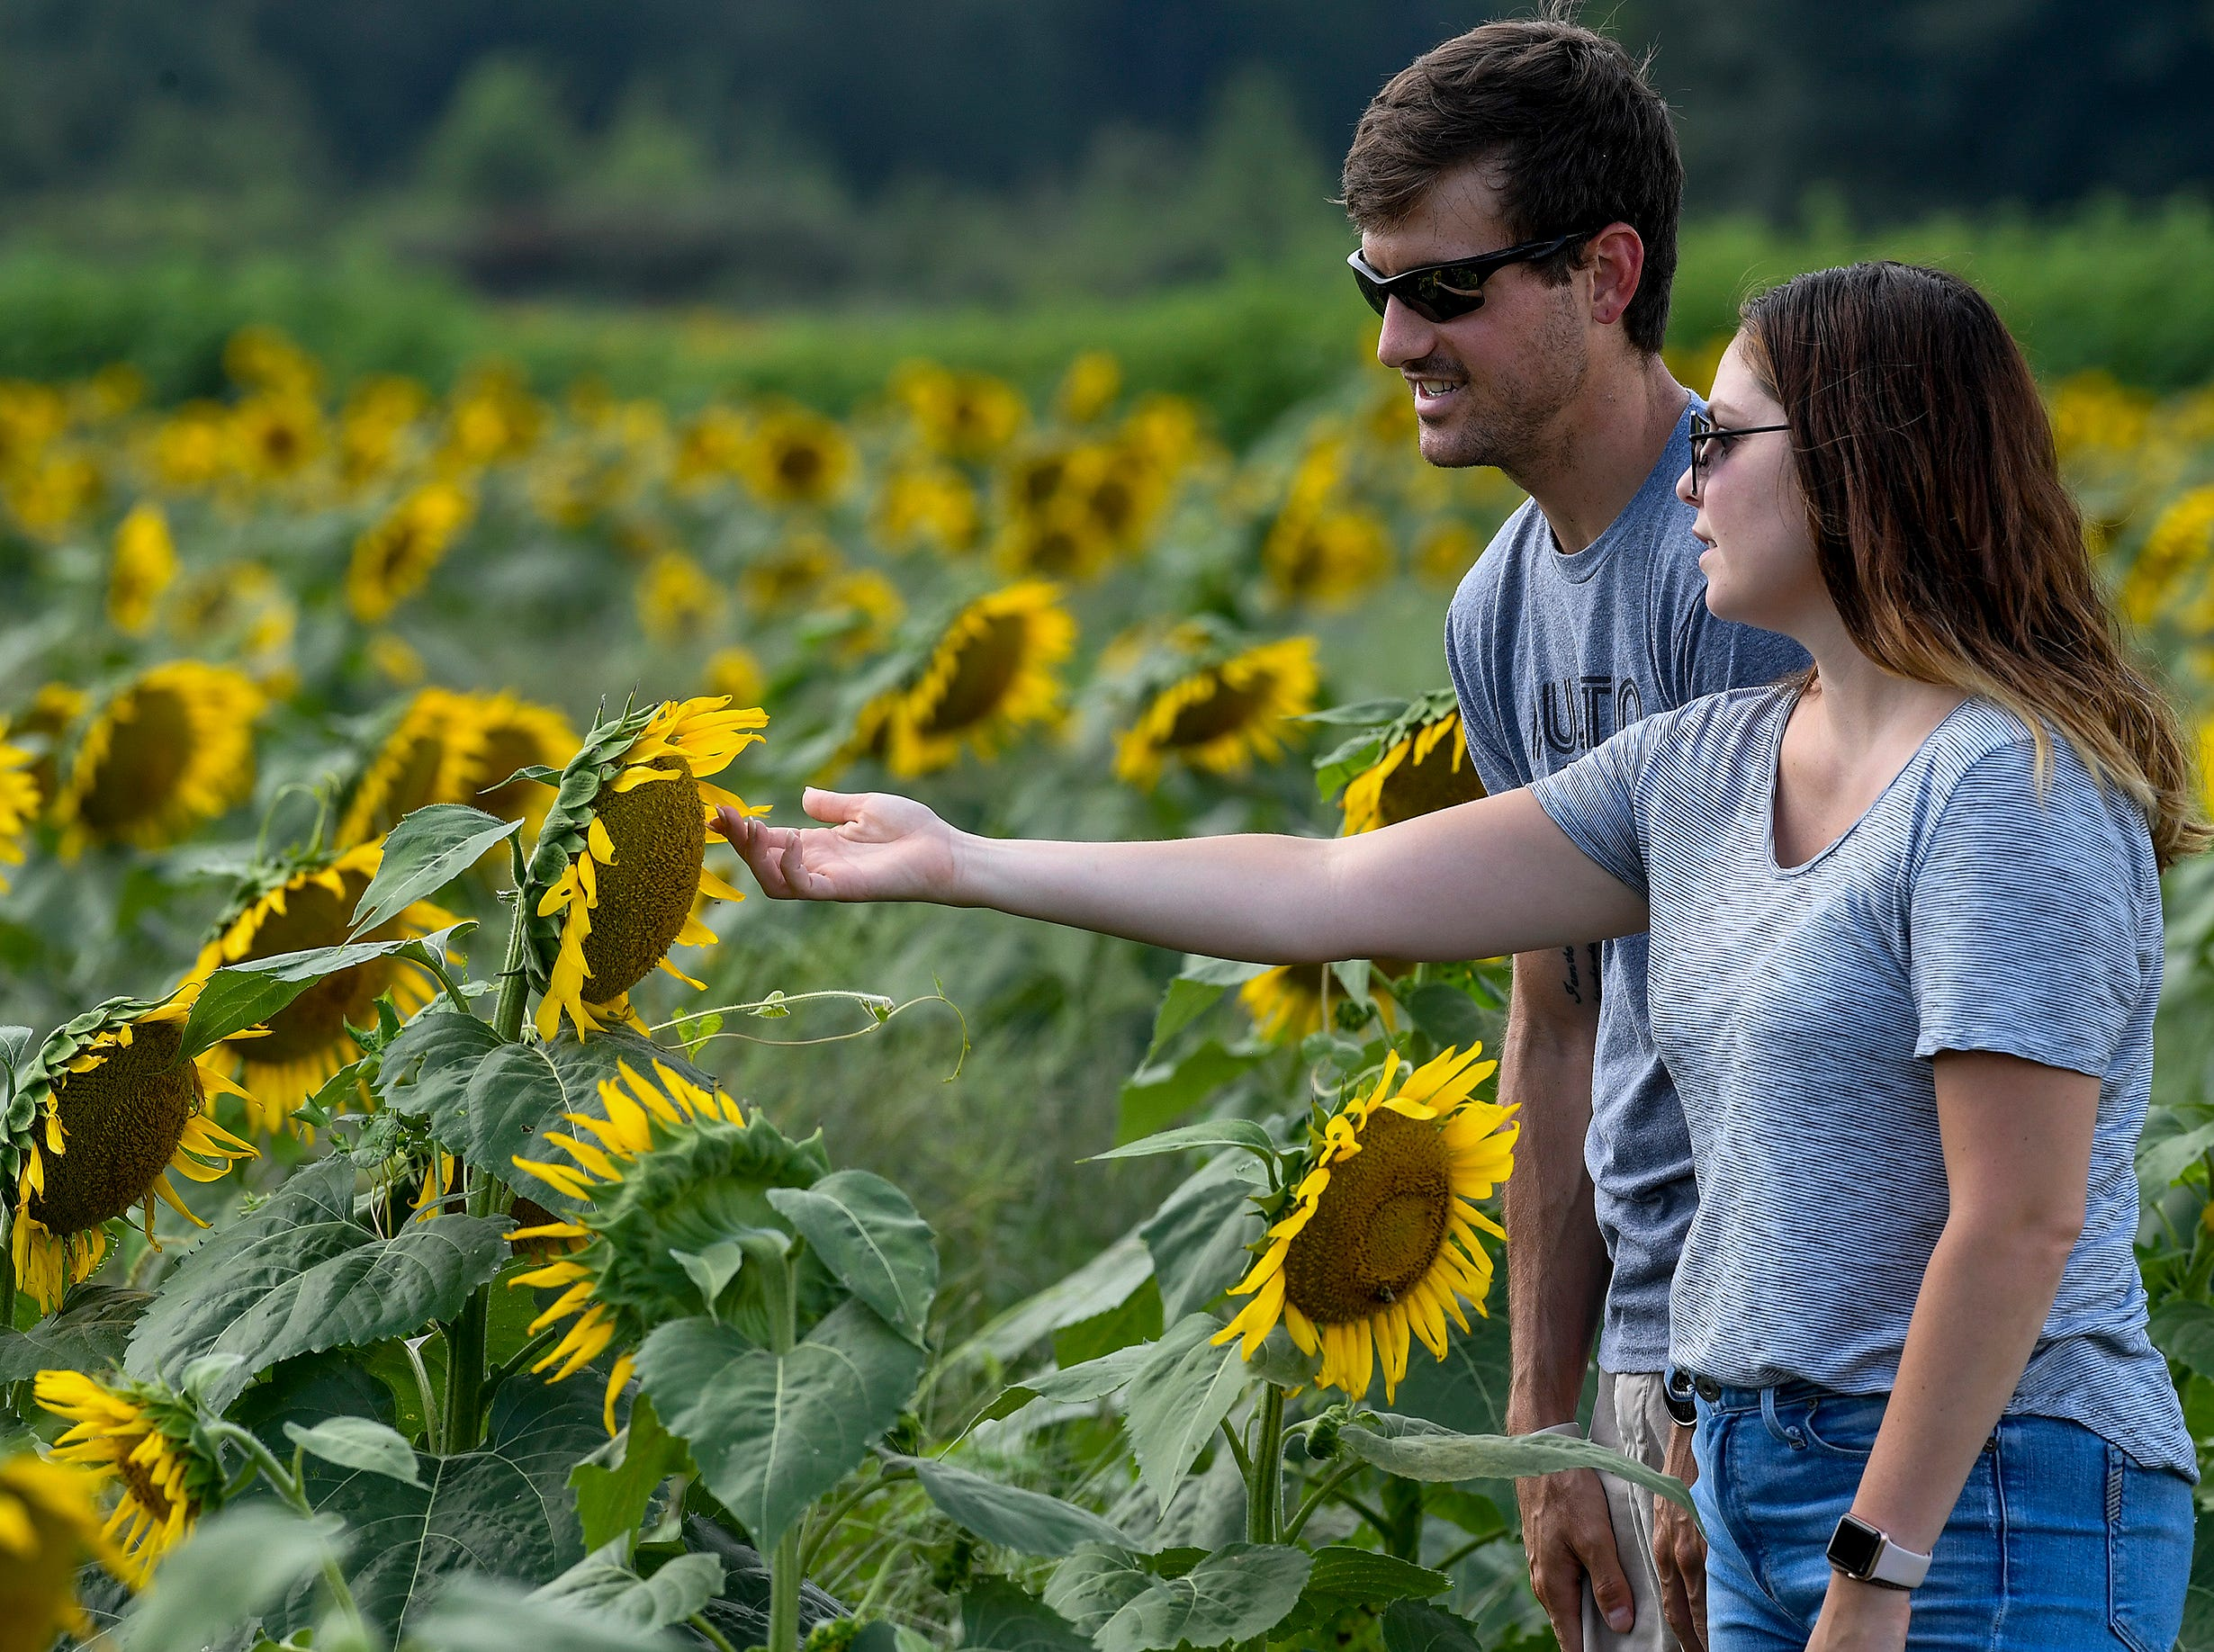 Jonathan Graham, of Birmingham, and Jennifer Evans, of Tuscaloosa, walk through the Sheridan family sunflower field about five miles west of Autaugaville, Ala. as the sunflowers bloom on Monday August 13, 2018.